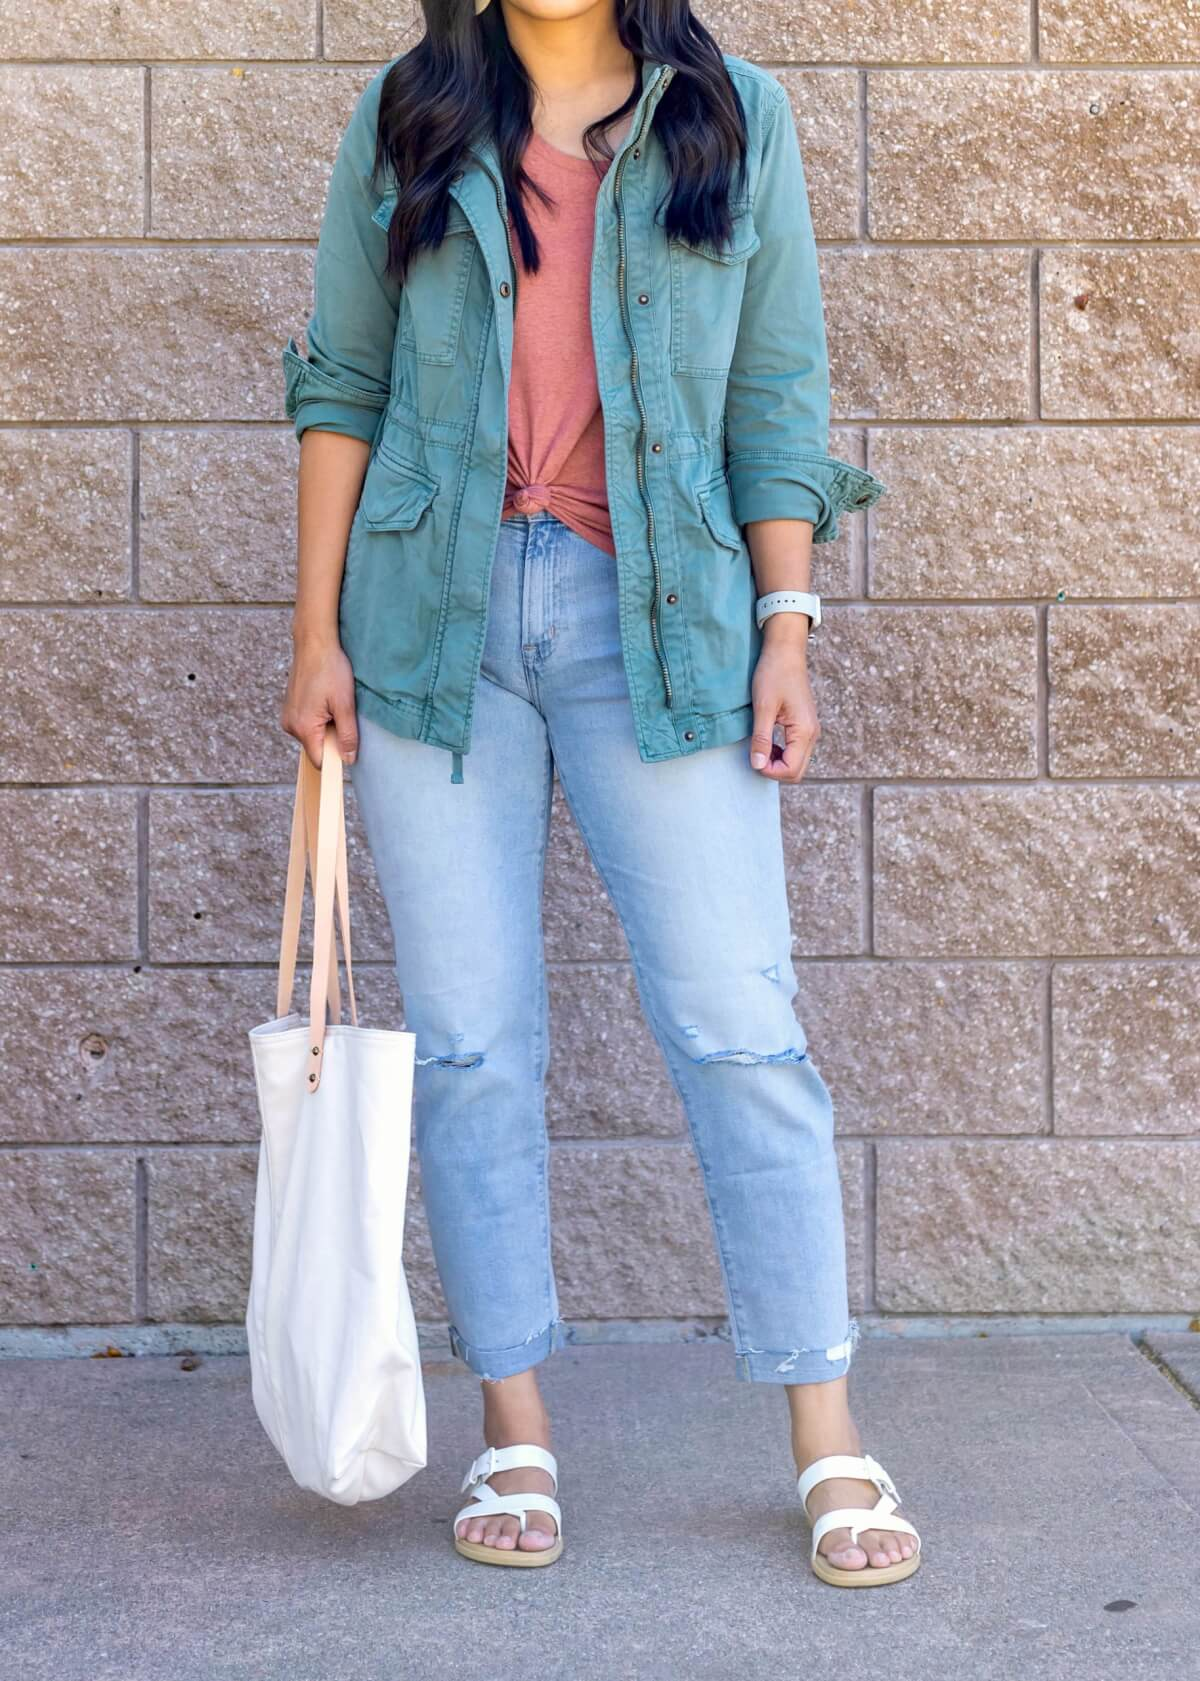 Casual Fall Outfit: pink tshirt + light wash distressed straight leg jeans + Gap green utility jacket + white footbed Crocs sandals + white canvas tote